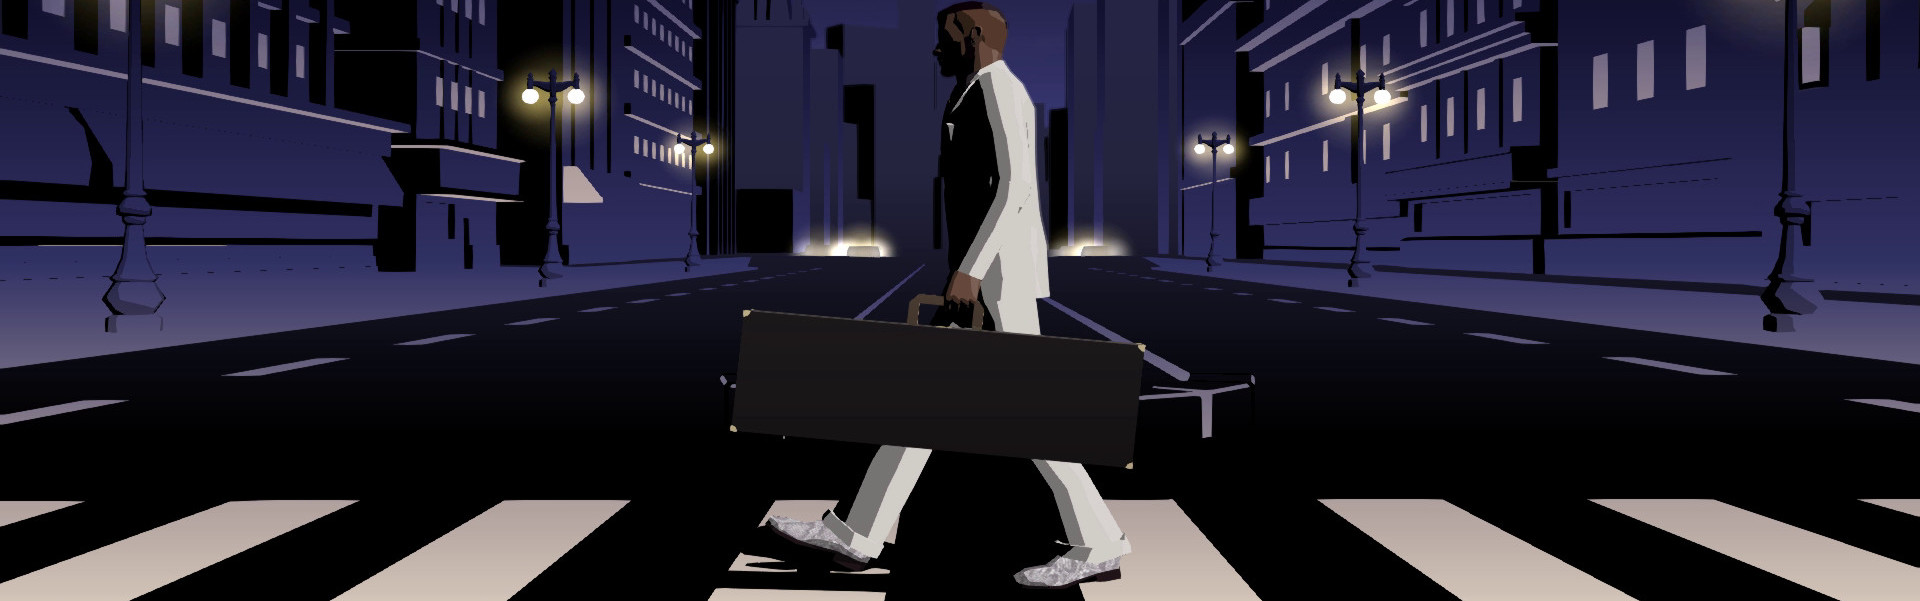 killer7 (Digital Limited Edition) Steam Key GLOBAL